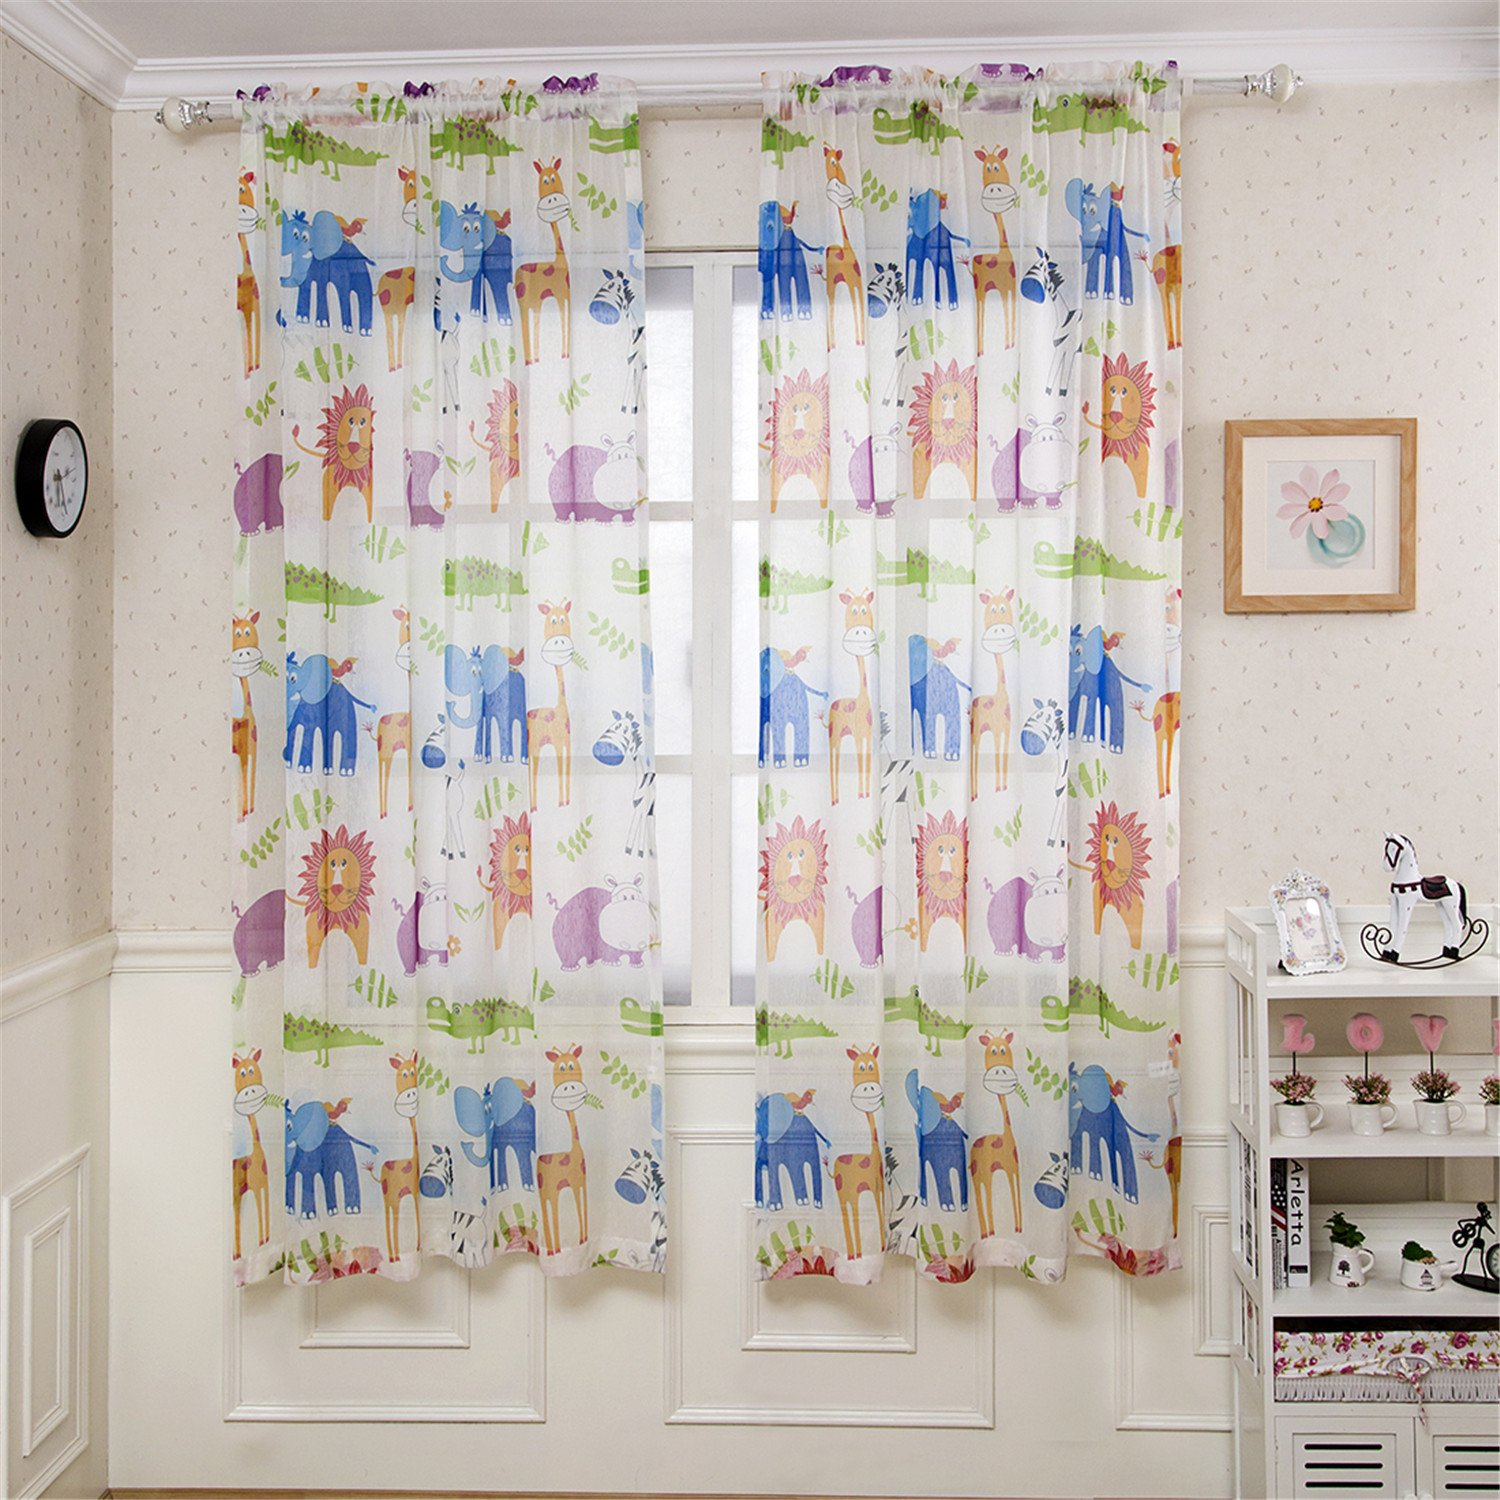 BGment Room Darkening Kids Curtains with Variety of Cute Animals Printed for Kid's Room 2 Panels, Grommets Top, (42x63 inch Each Panel, Beige) … Beige) … BGment Hometex